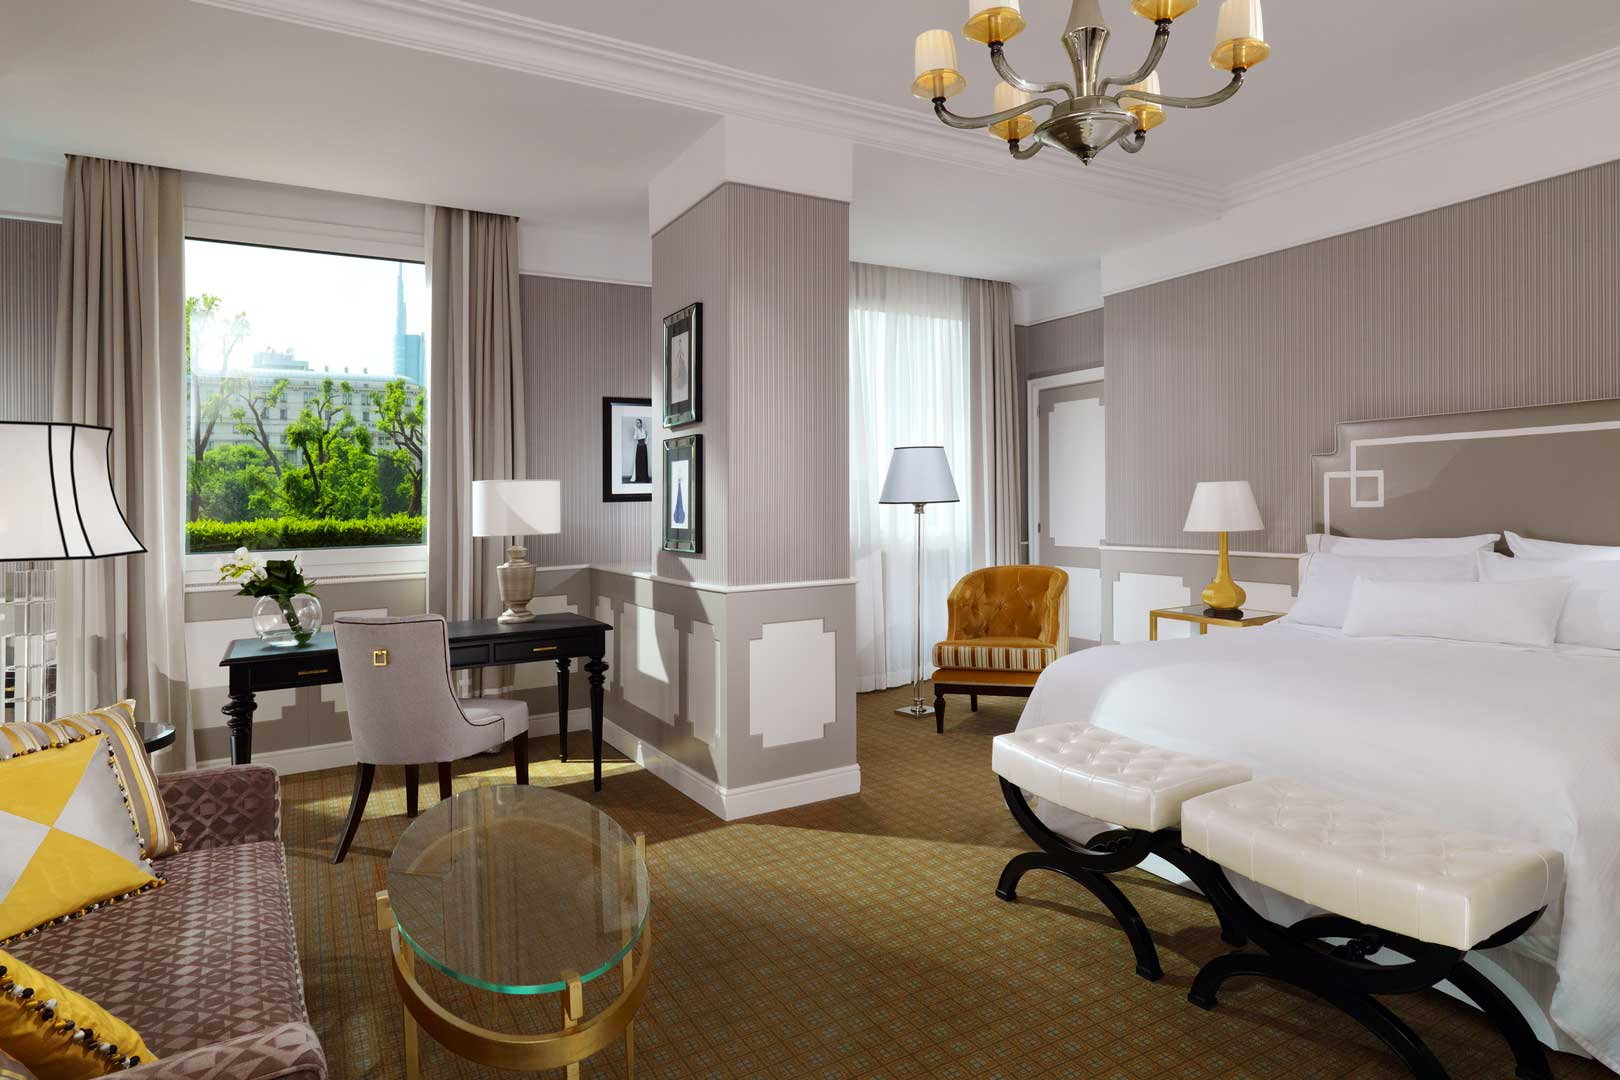 Westin Palace Milan - Grand Deluxe Contemporary Room